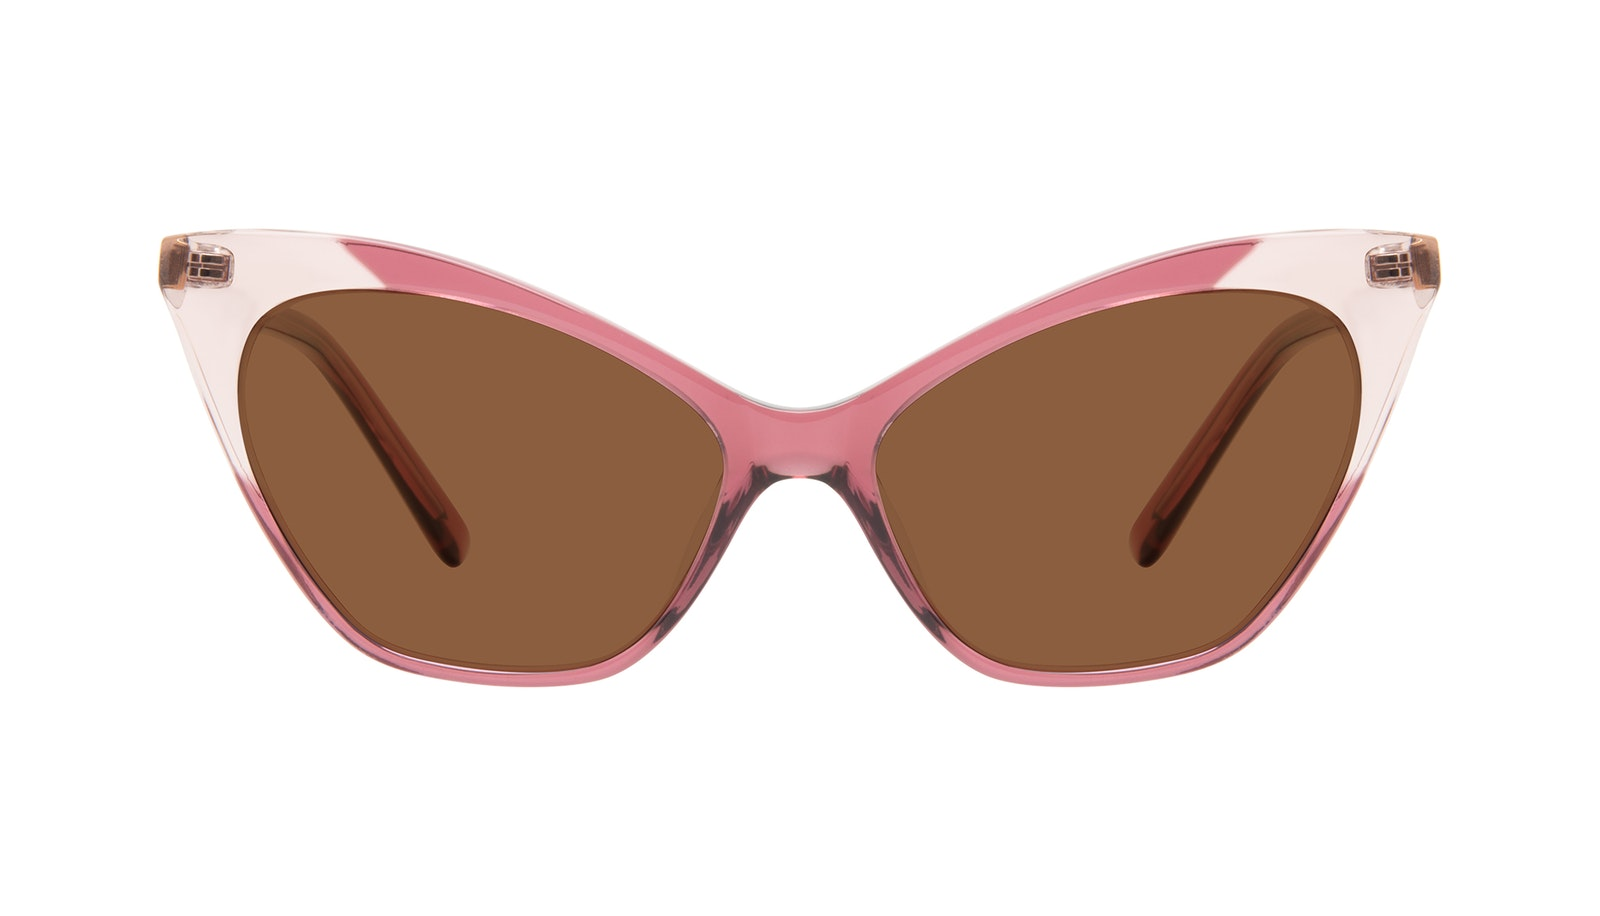 Affordable Fashion Glasses Cat Eye Sunglasses Women Gossip Orchid Pink